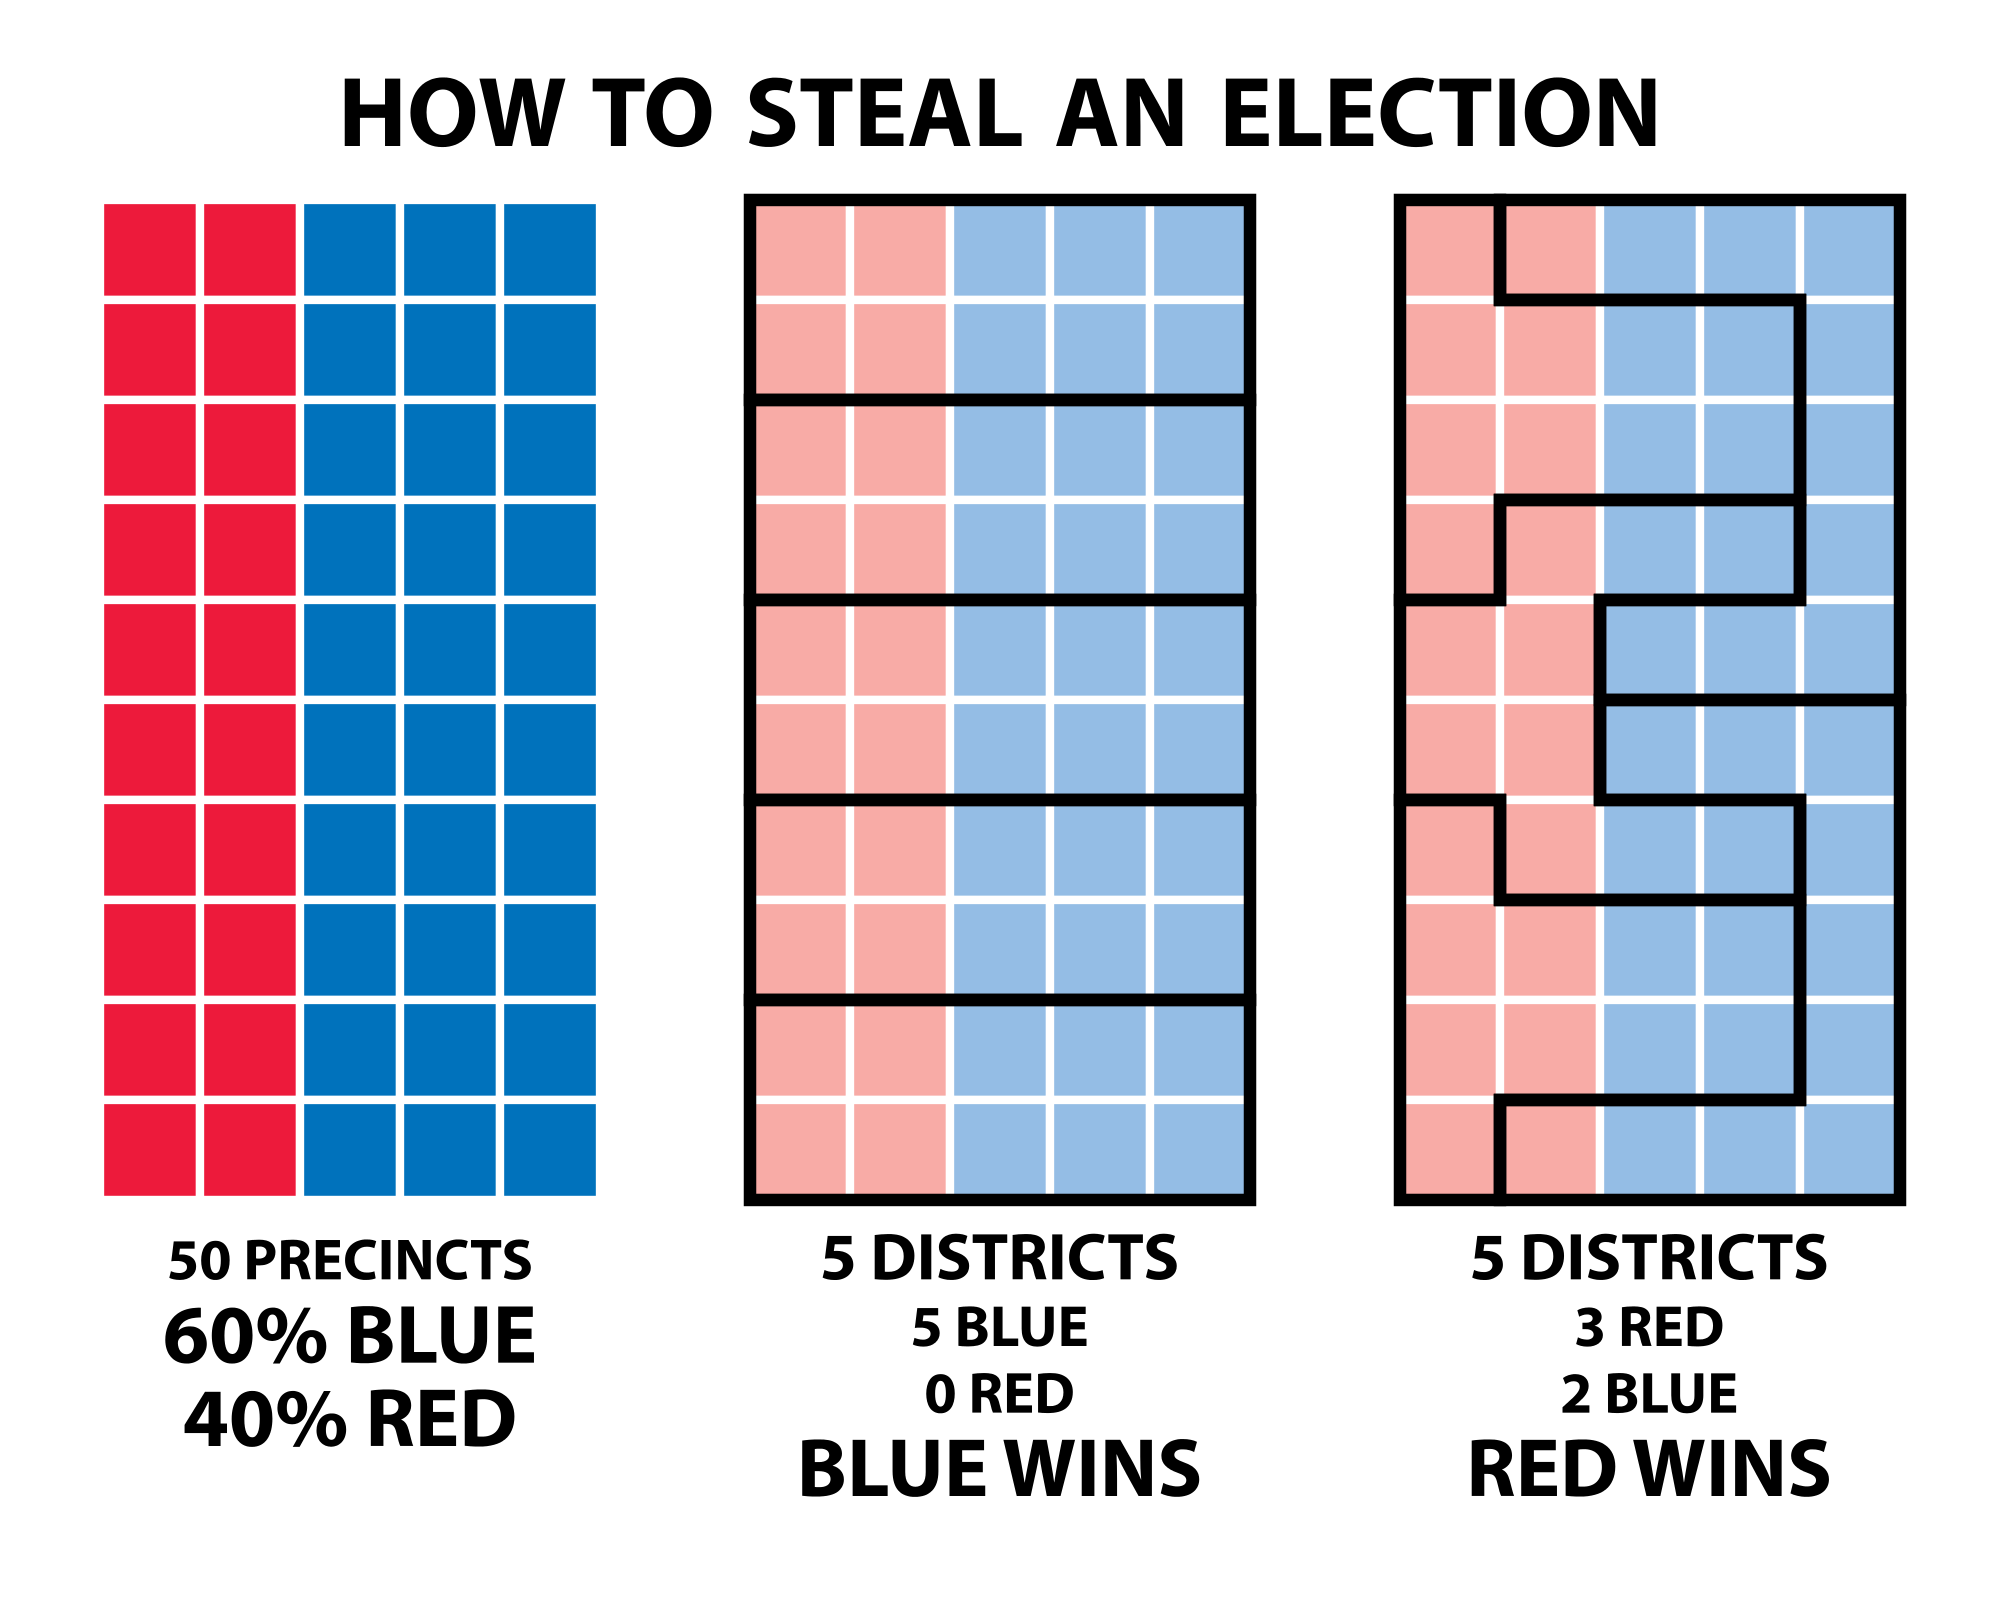 How_to_Steal_an_Election_-_Gerrymandering.svg.png